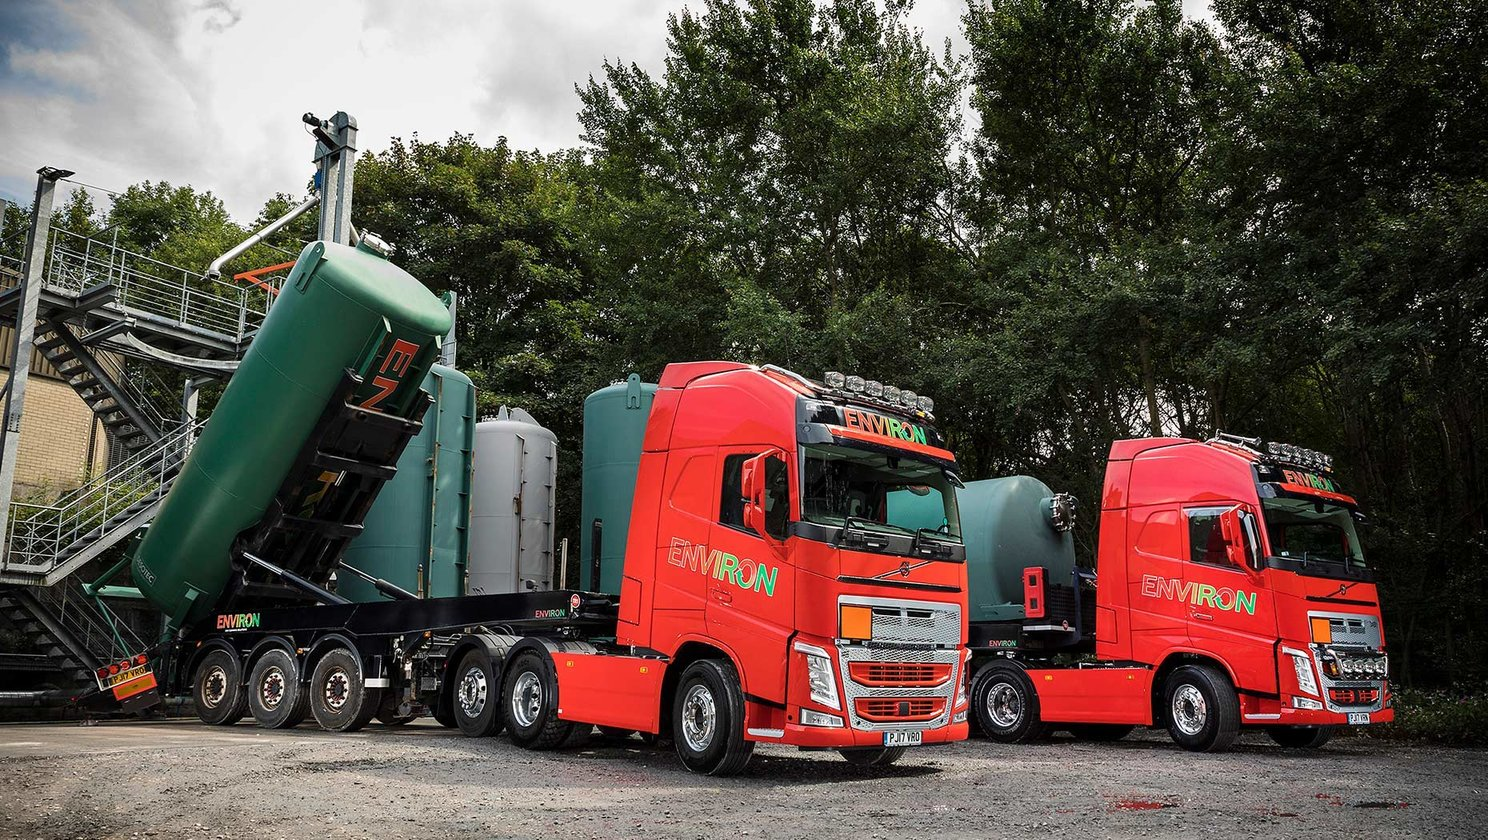 High Peak, Derbyshire-based Environ have put the company's first two Volvo trucks into service.